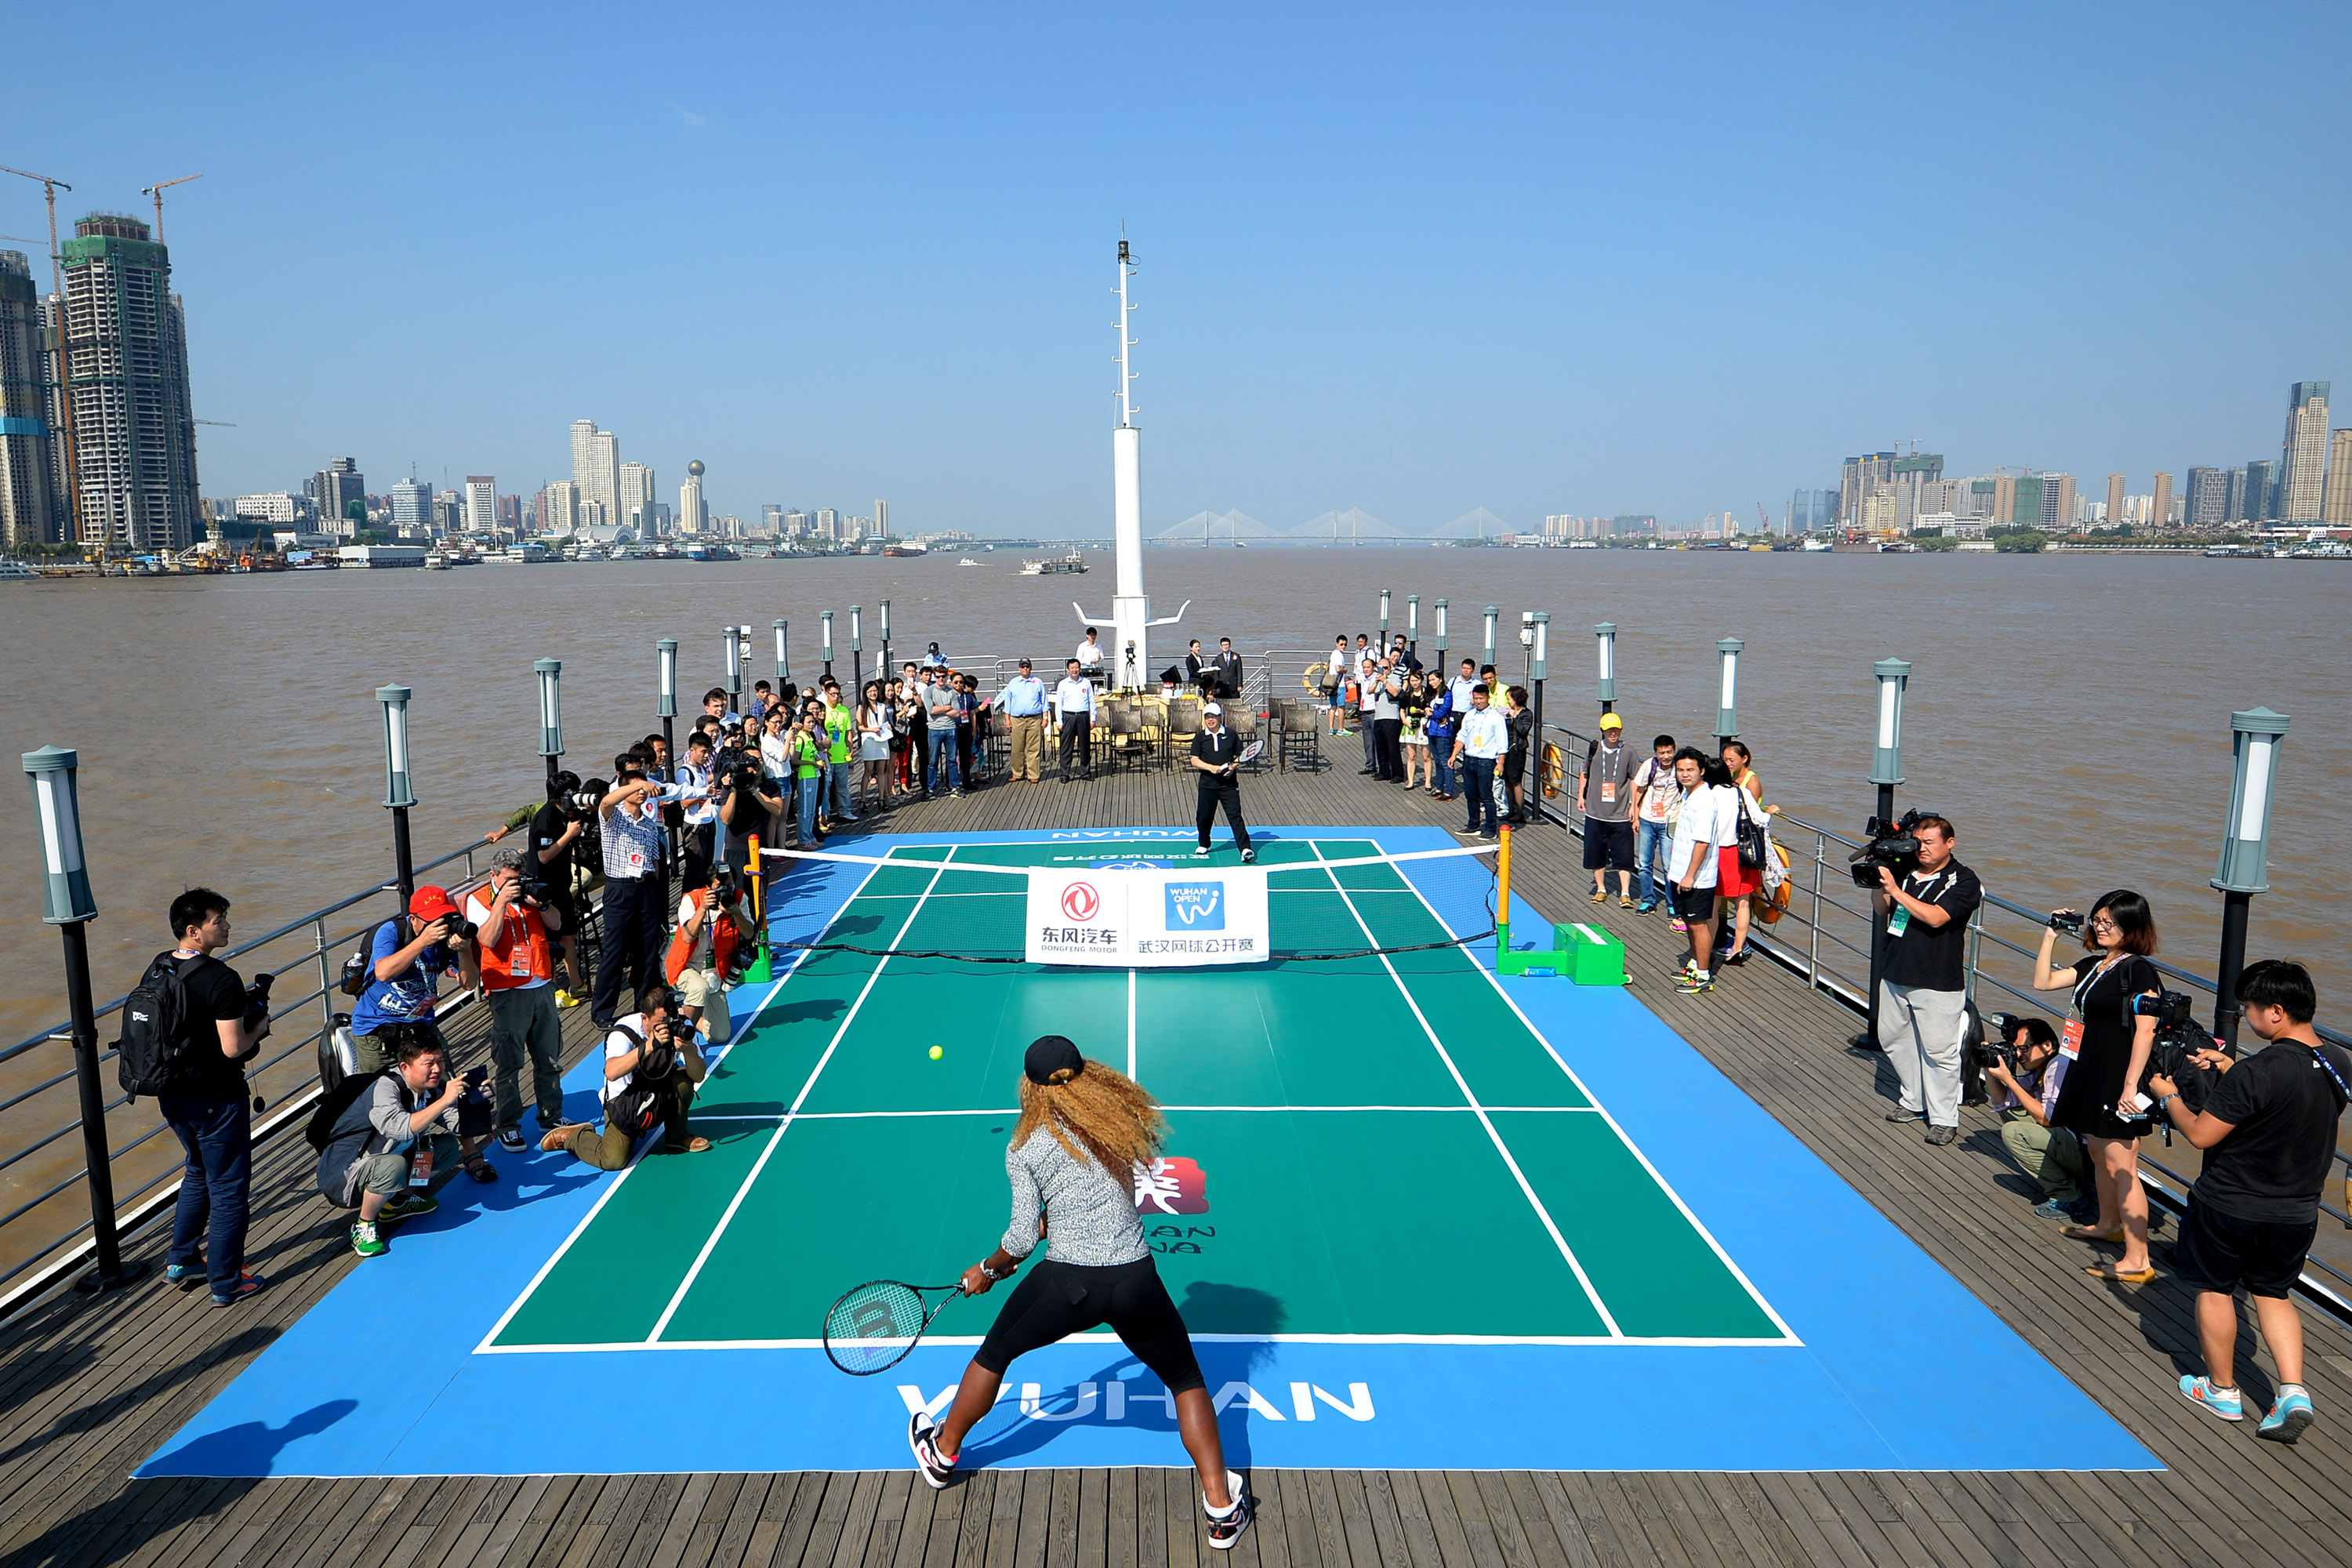 Serena Williams attends a tennis activity at Yangtze River during the second day of the Wuhan Open.